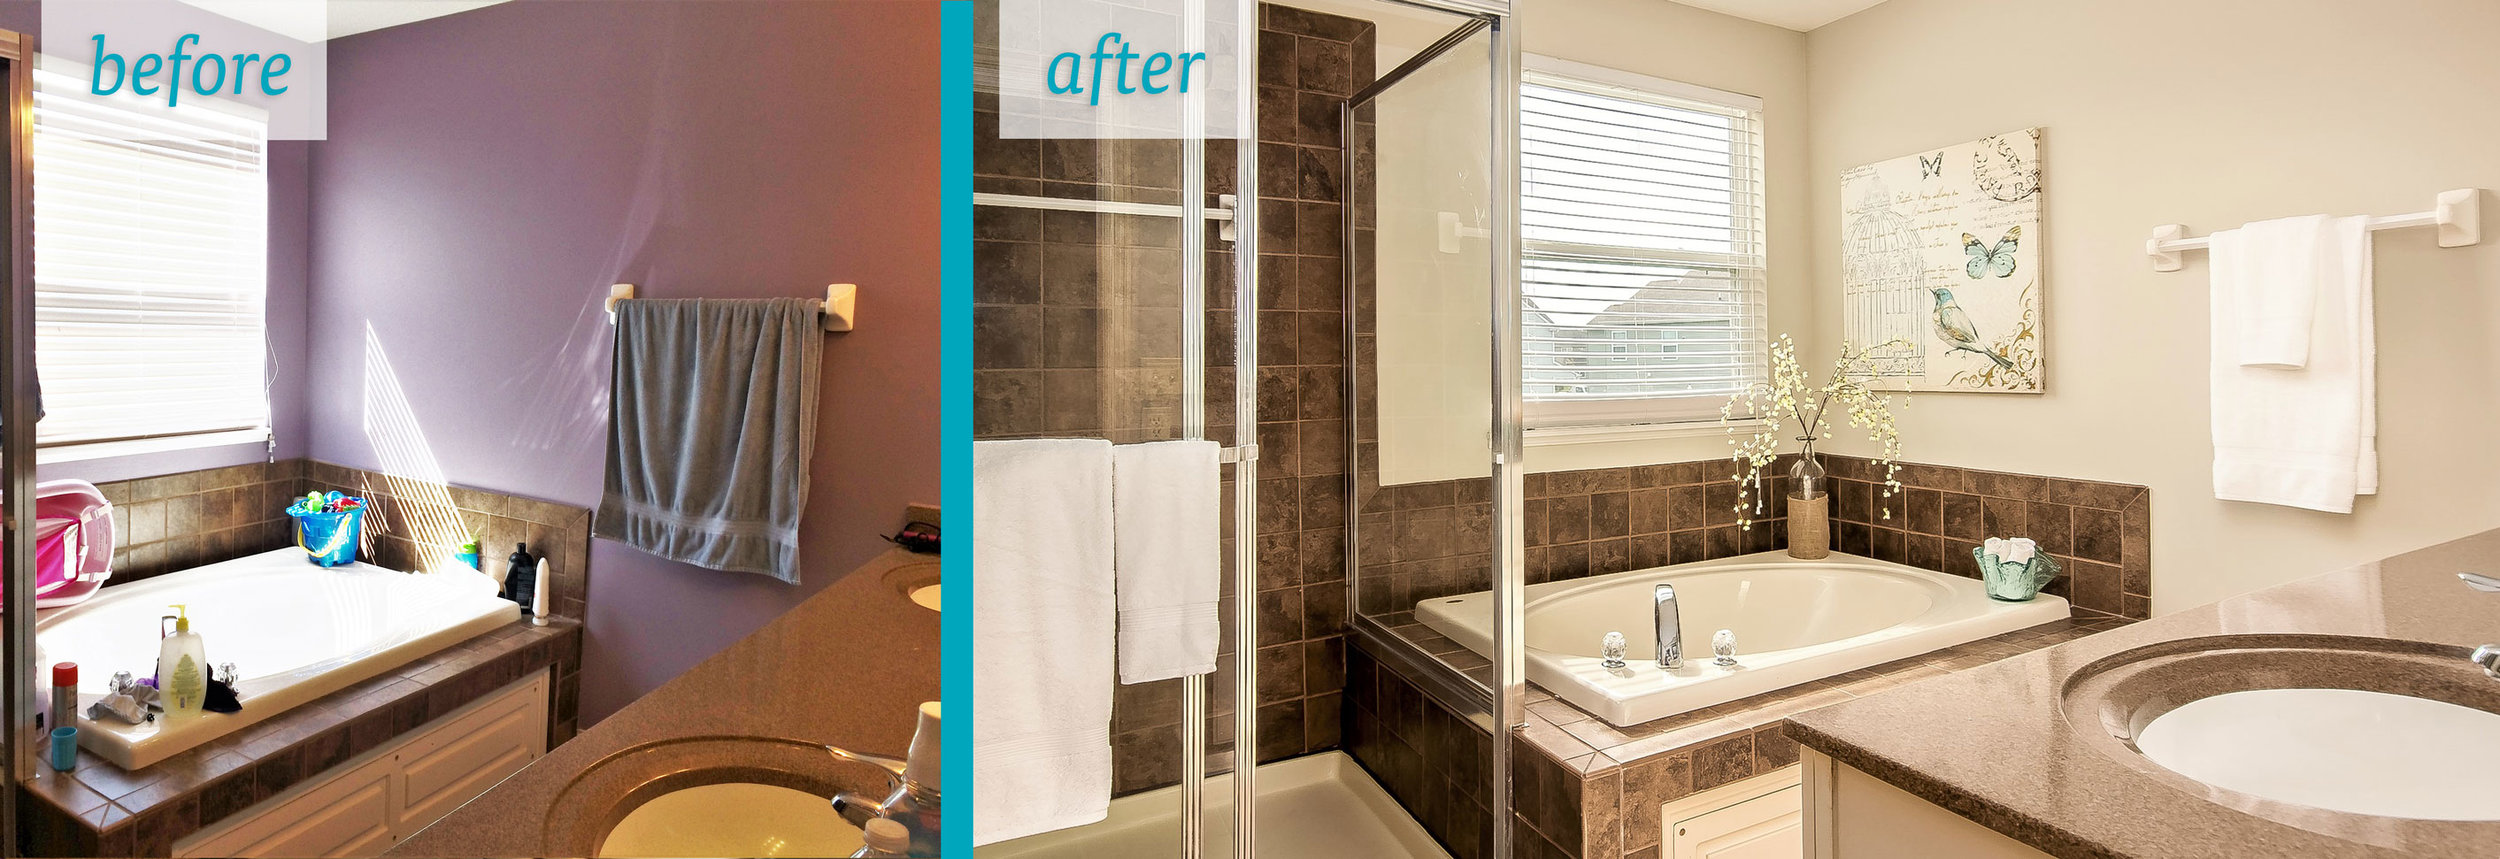 large-main-3-bath2-before-after.jpg